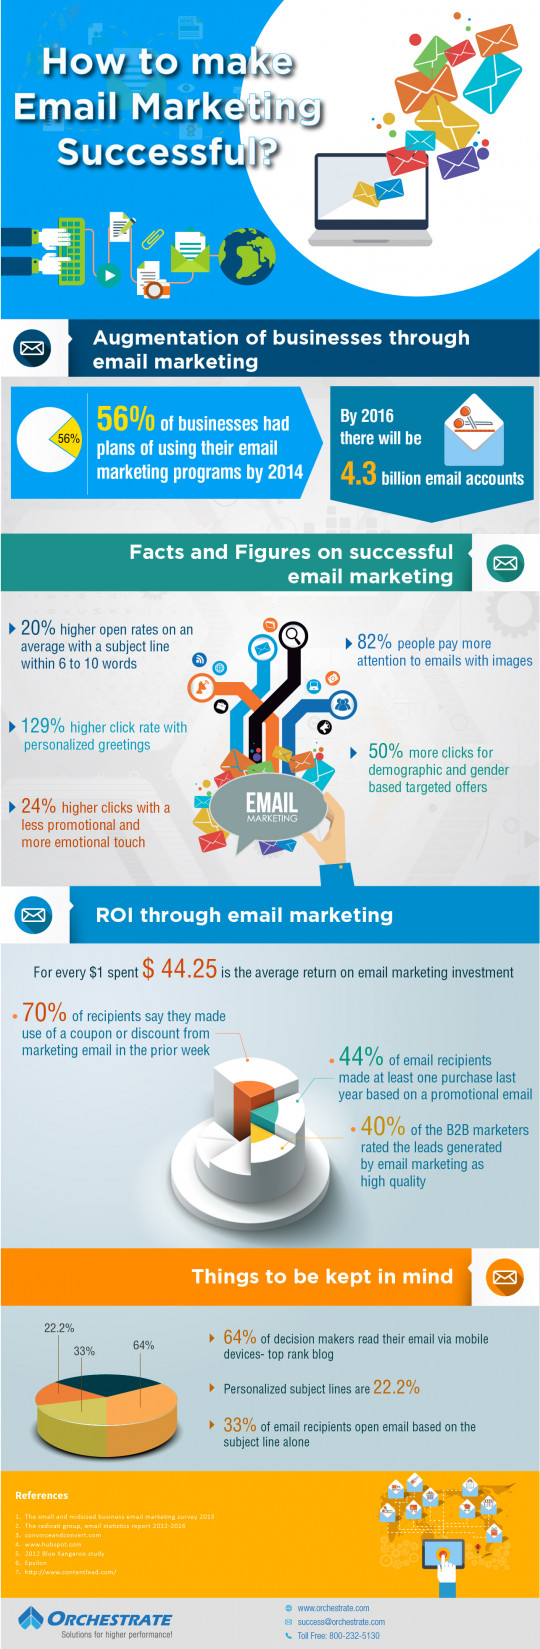 How to make email marketing successful?